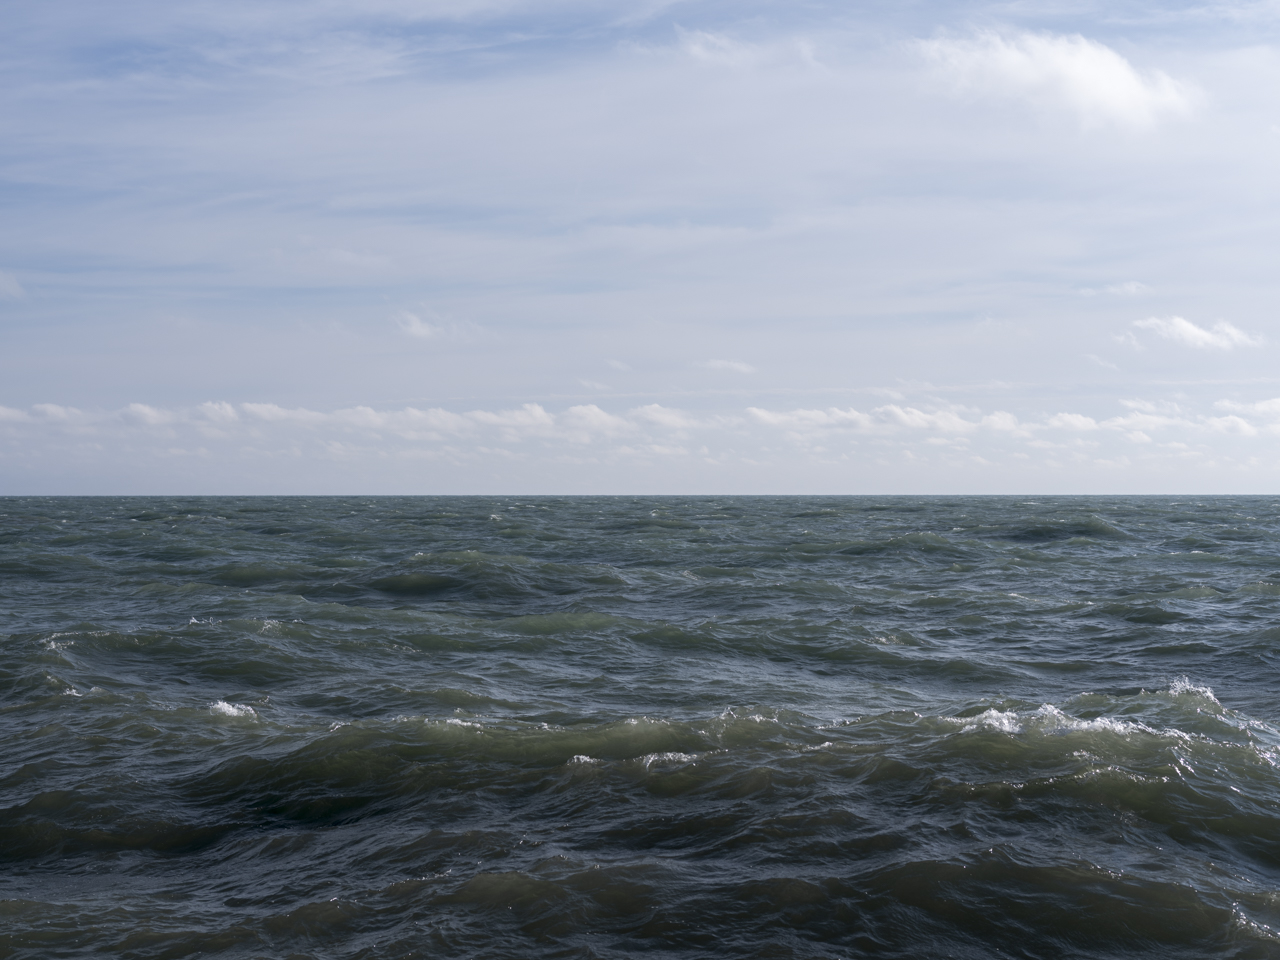 A windy day over Lake Michigan with waves